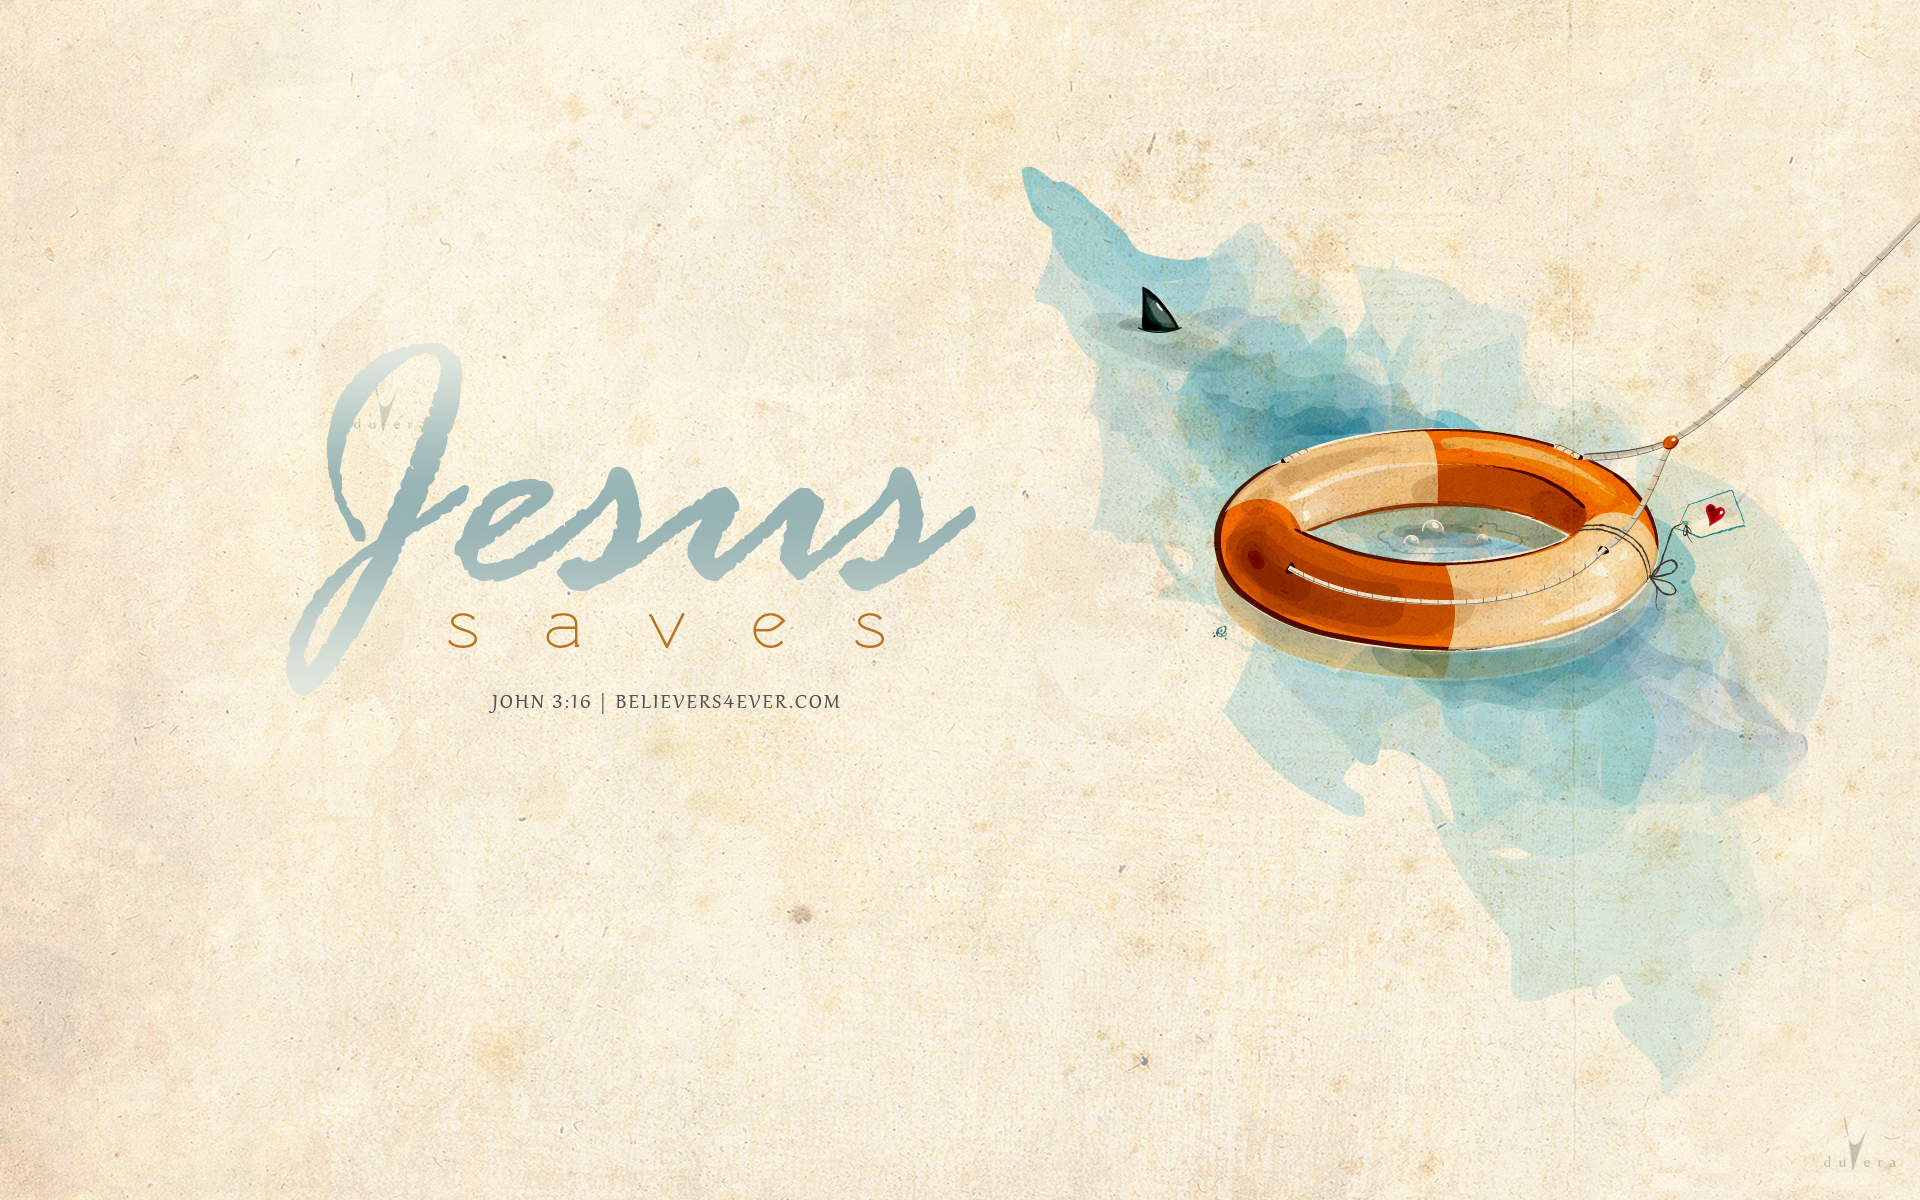 Jesus saves, John 3:16 Christian wallpaper, Lifebuoy Christian desktop wallpaper